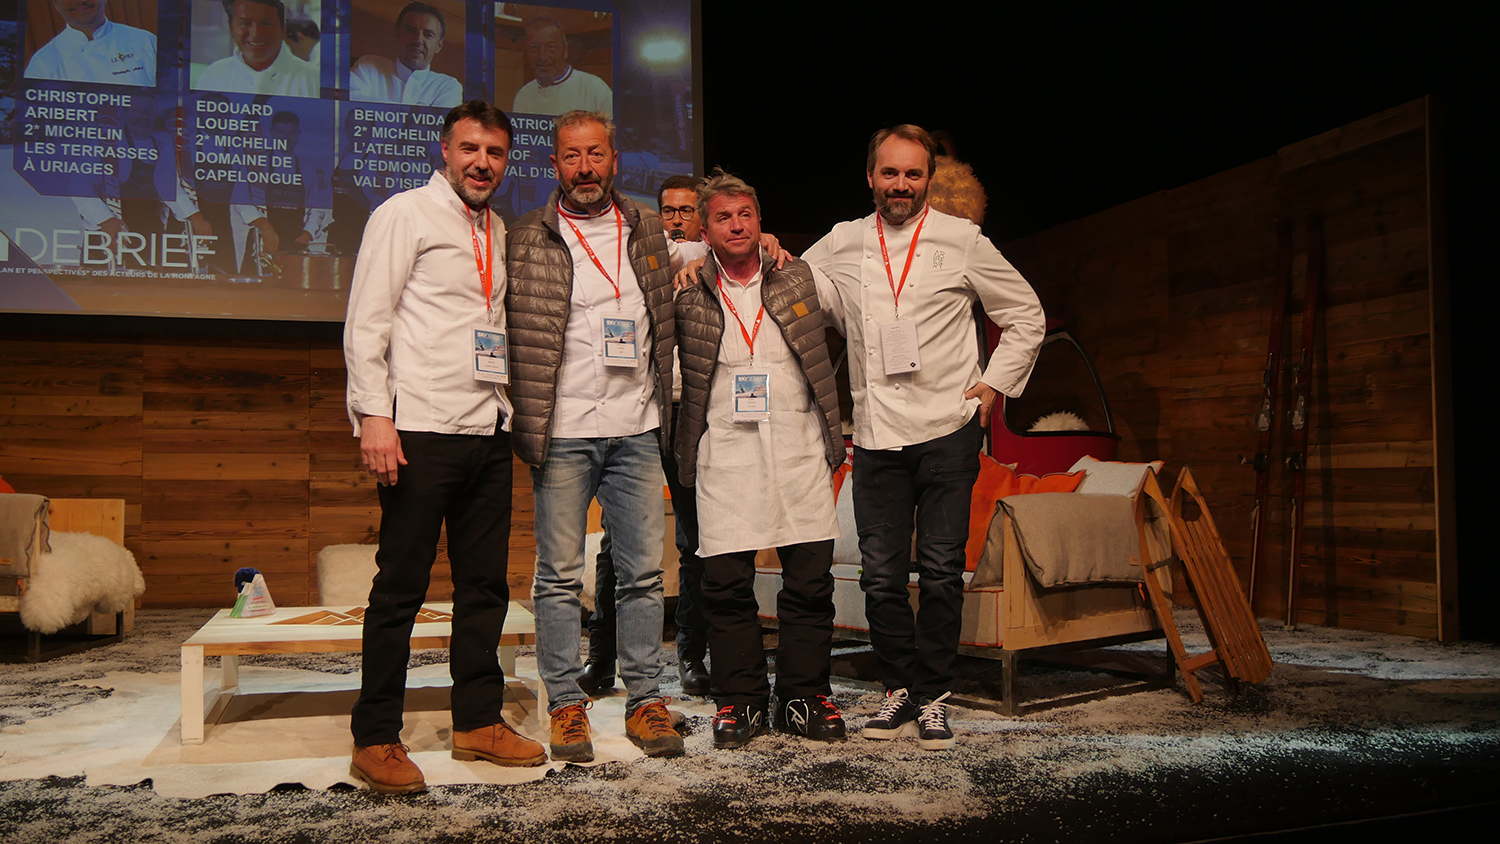 "Table-ronde ""Le ski épicurien"" avec l'intervention de 4 chefs : Benoît Vidal, Patrick Chevallot, Edouard Loubet, Christophe Arribert"